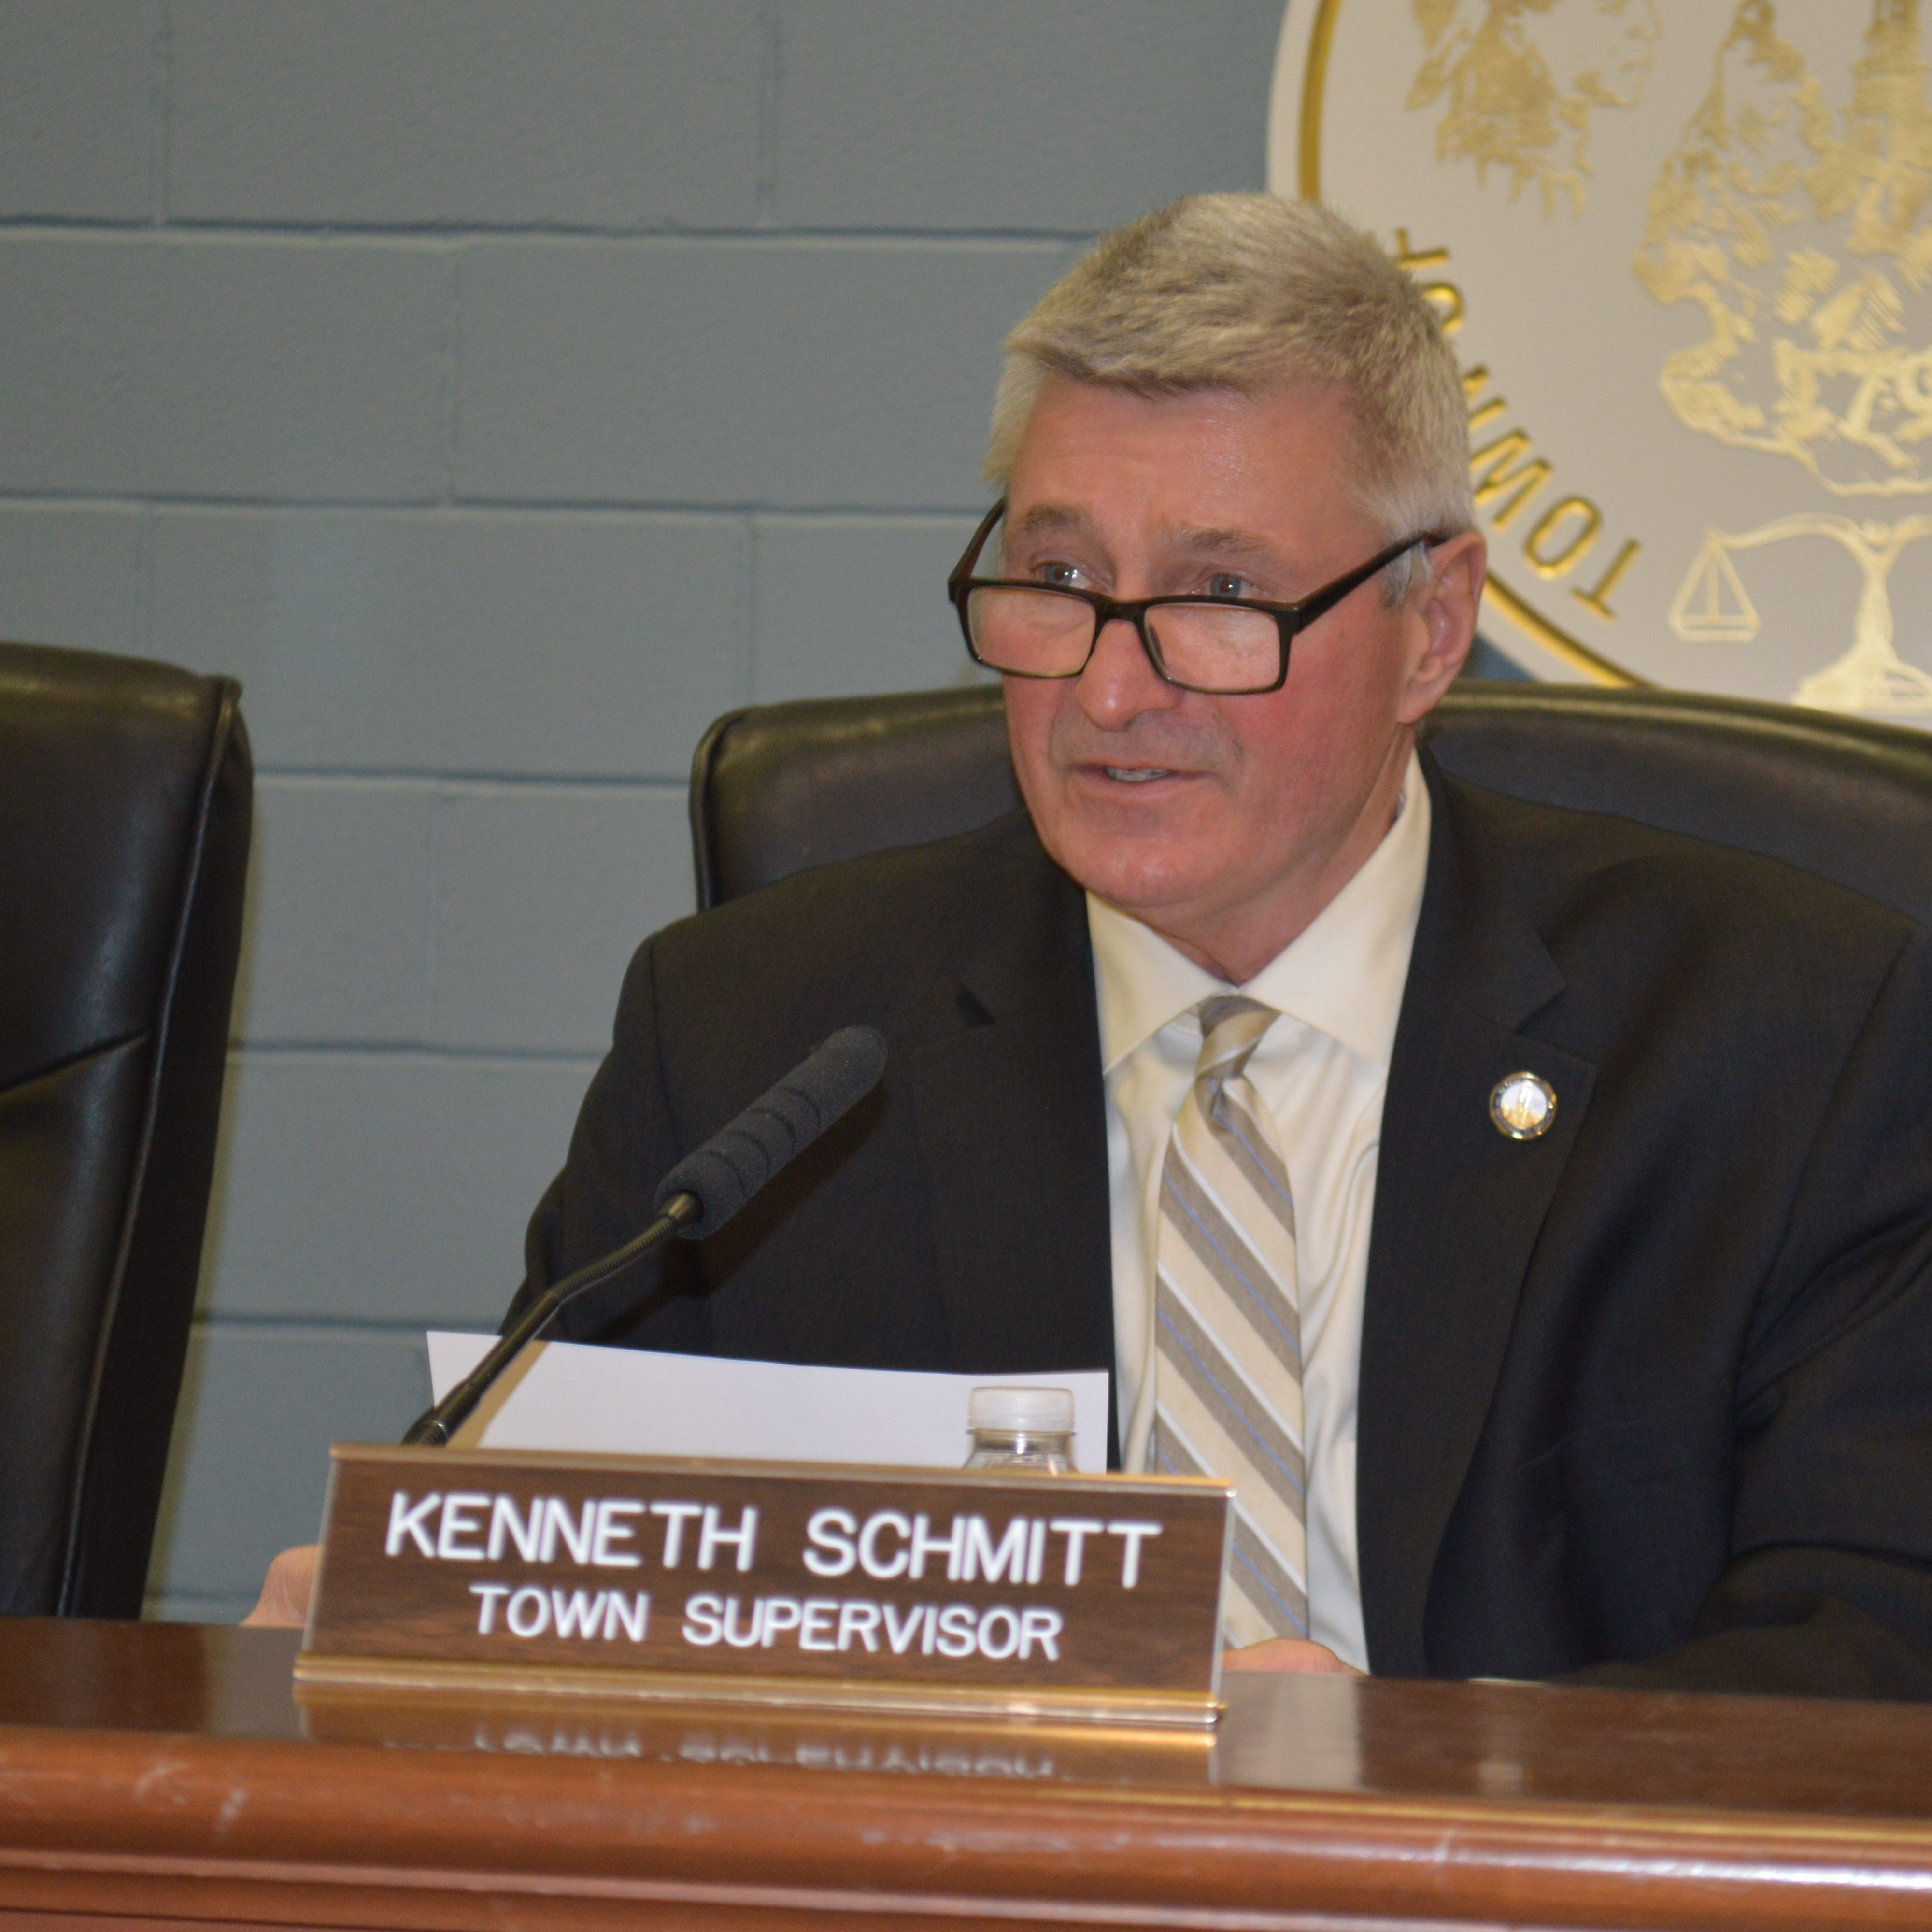 Carmel Supervisor Ken Schmitt wants AG probe into Swan Cove land purchase that he promoted